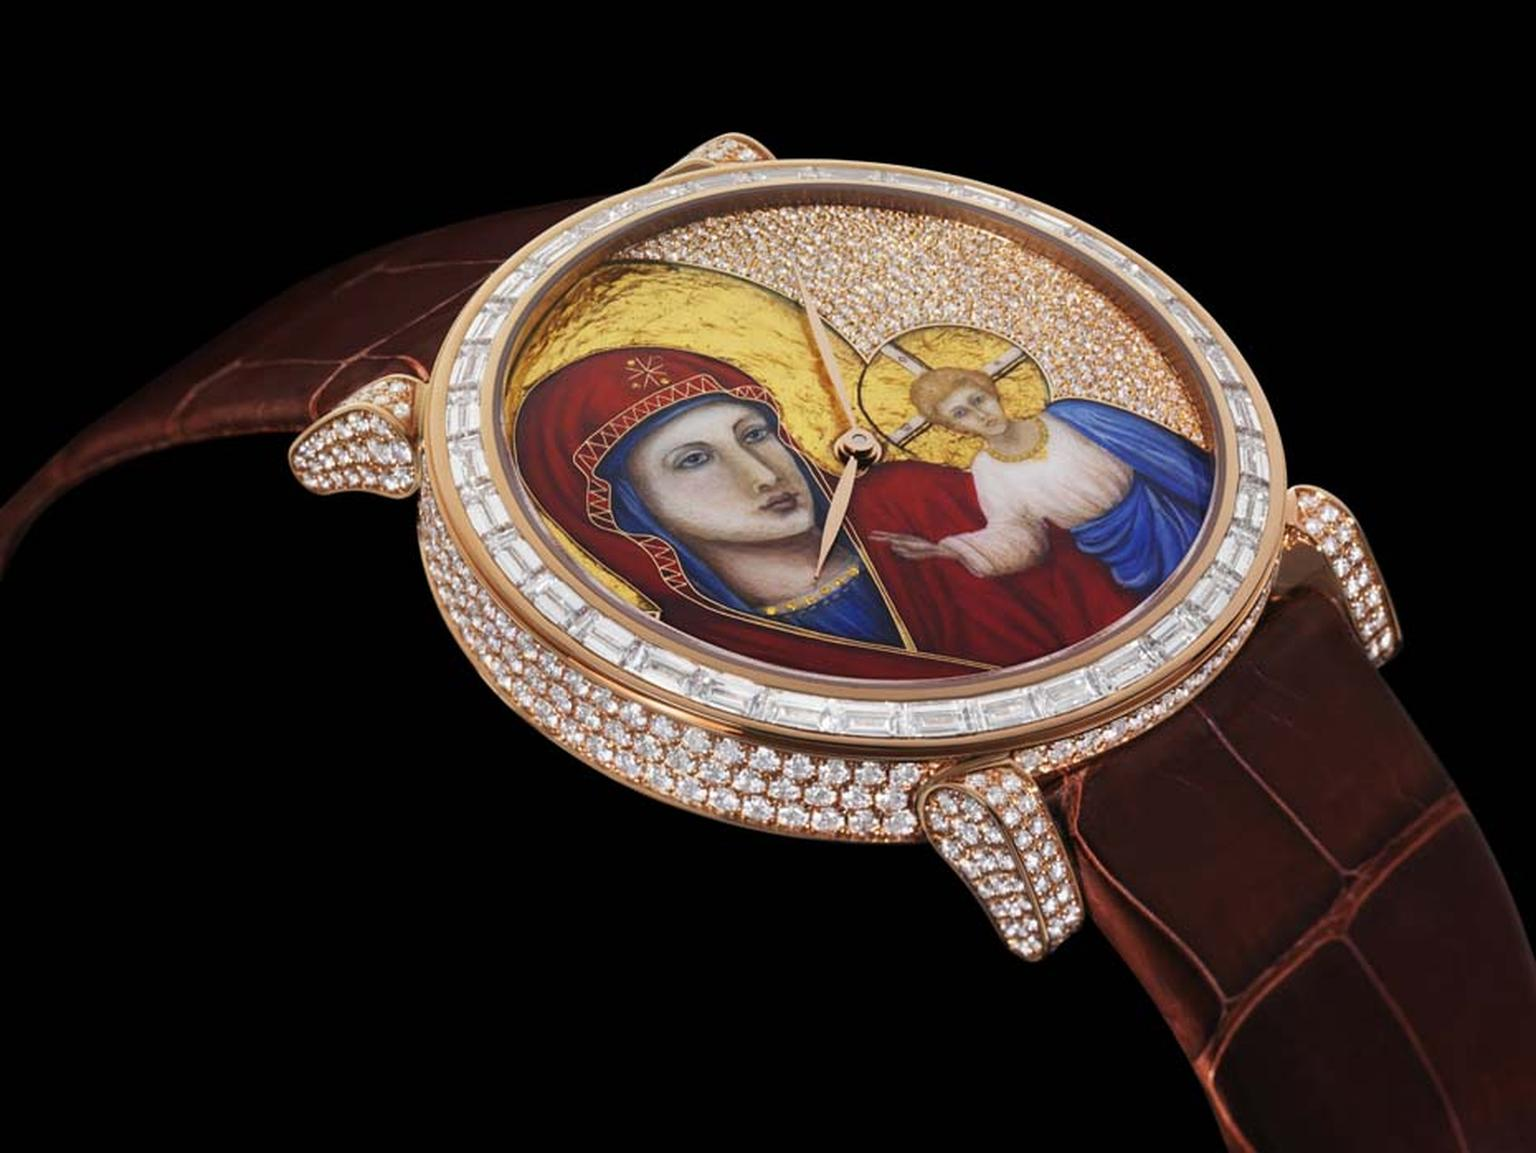 The miniature painting on the dial of DeLaneau's Rondo Icon watch is created using Grand Feu enamelling combined with cloisonné and champlevé work for the details on the Virgin's red headdress, surrounded by gold foil pailloné halos